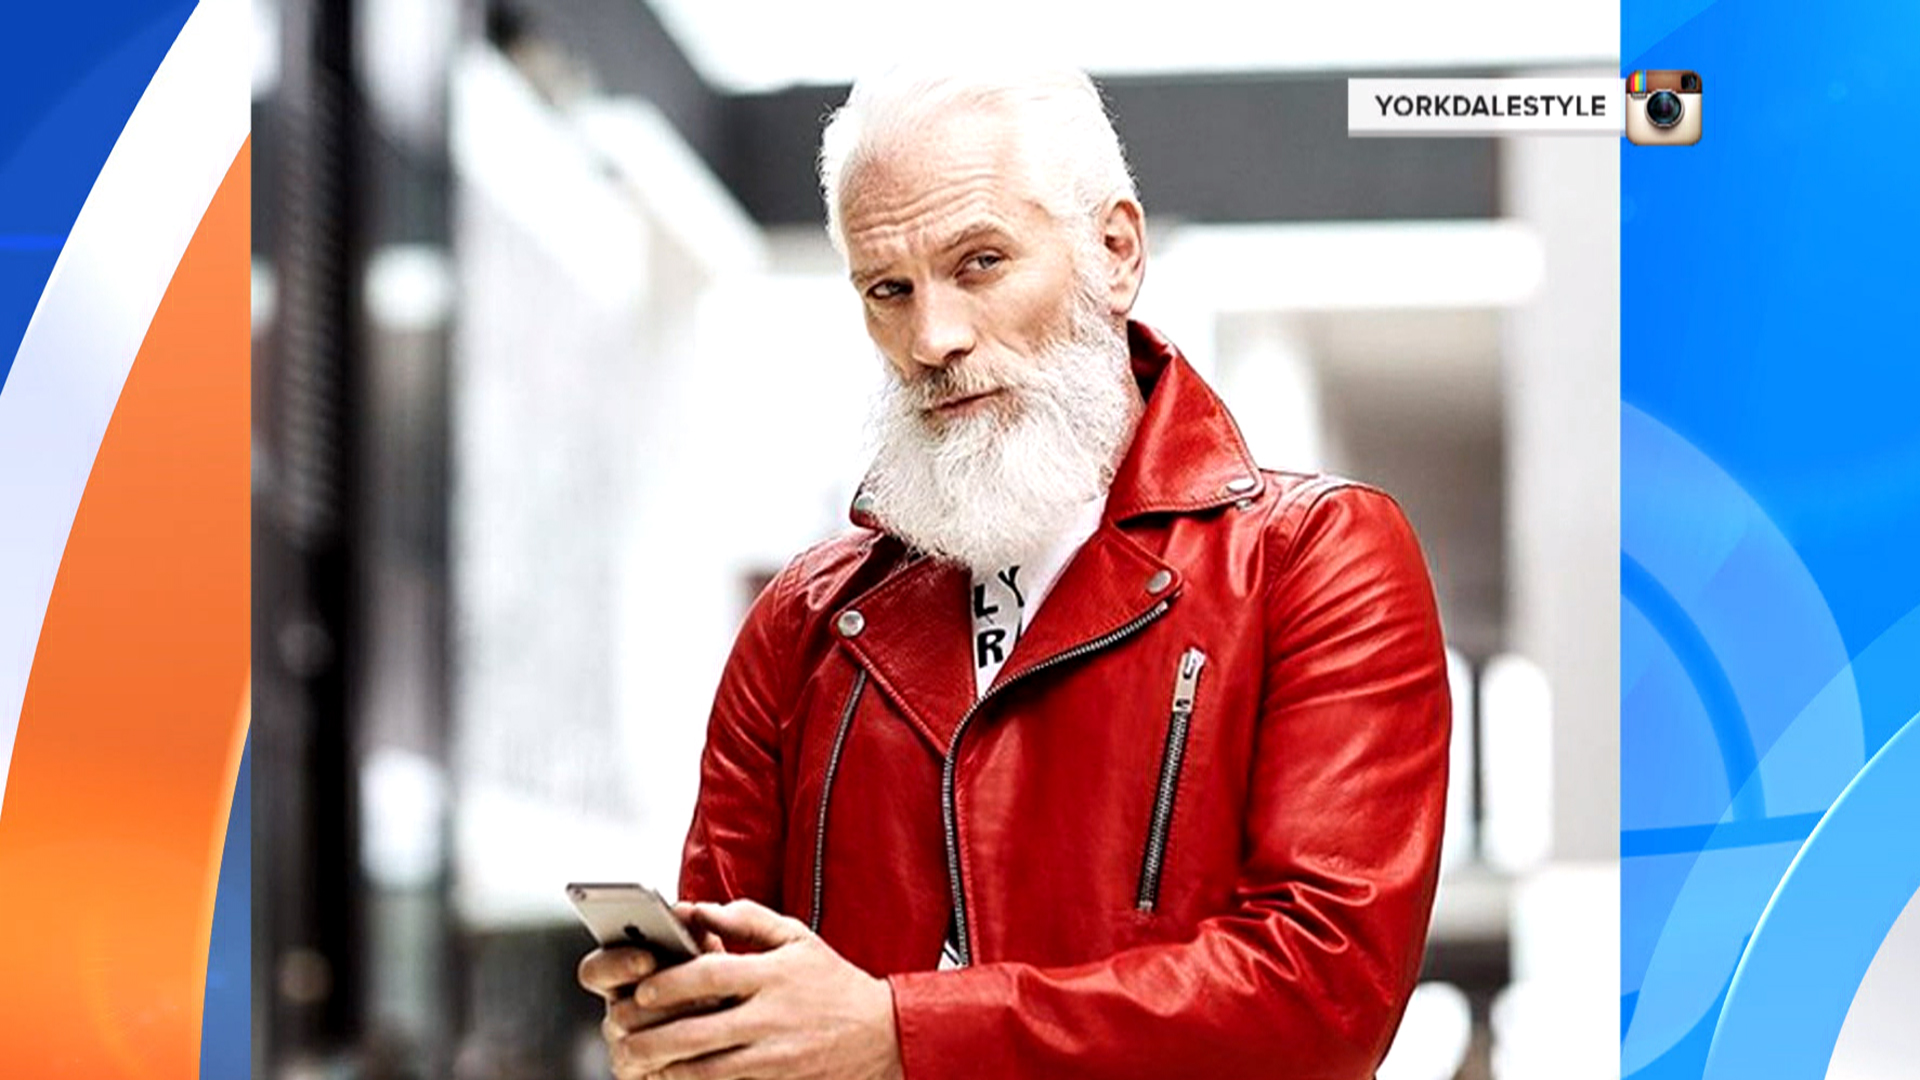 Leather jacket yorkdale